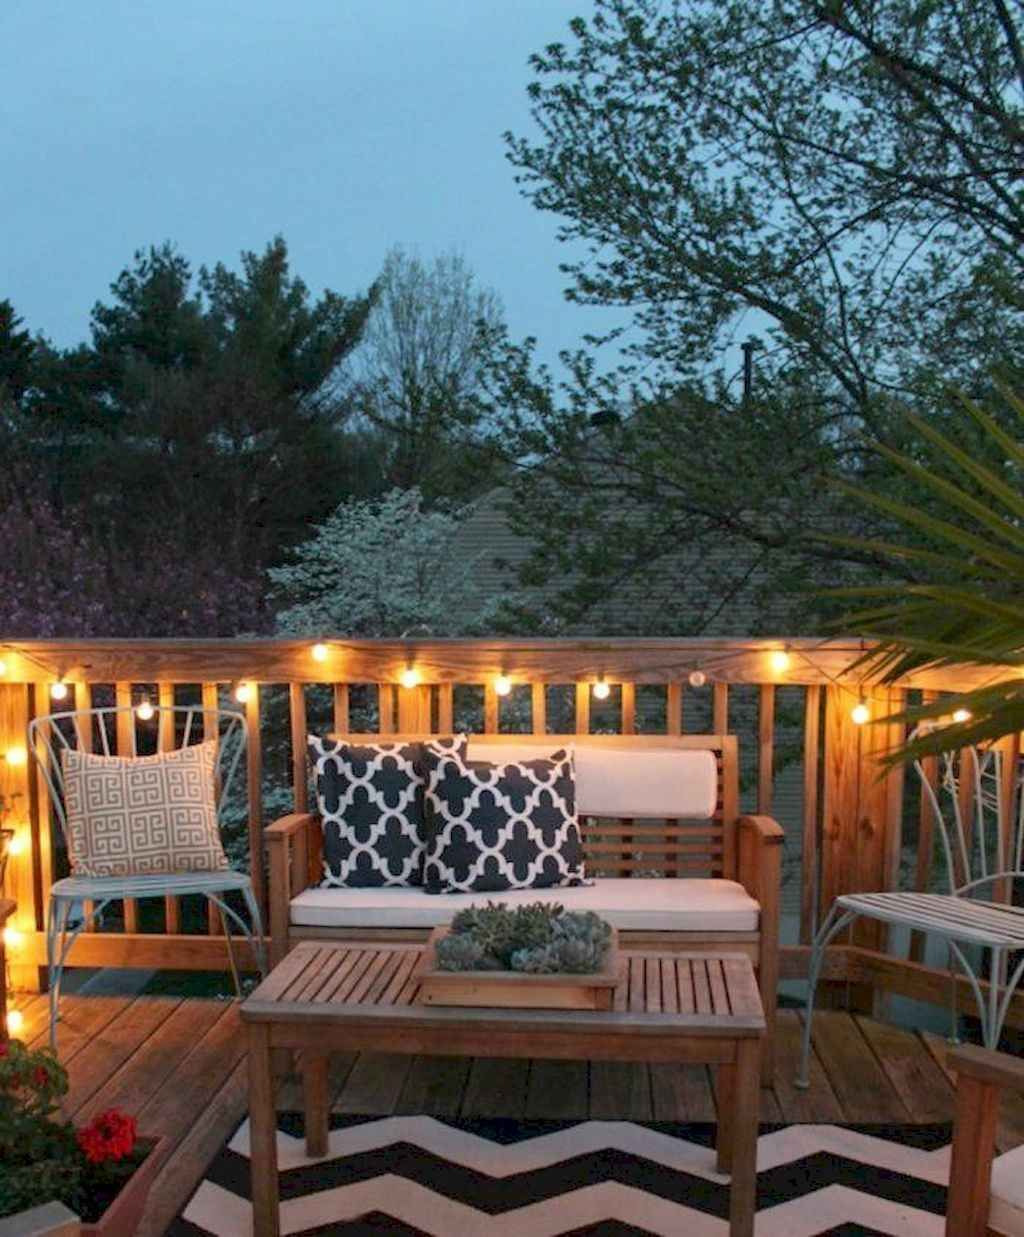 60 Inspired Small Patio Deck Design Ideas On A Budget Decorationroom Patio Deck Designs Patio Small Patio